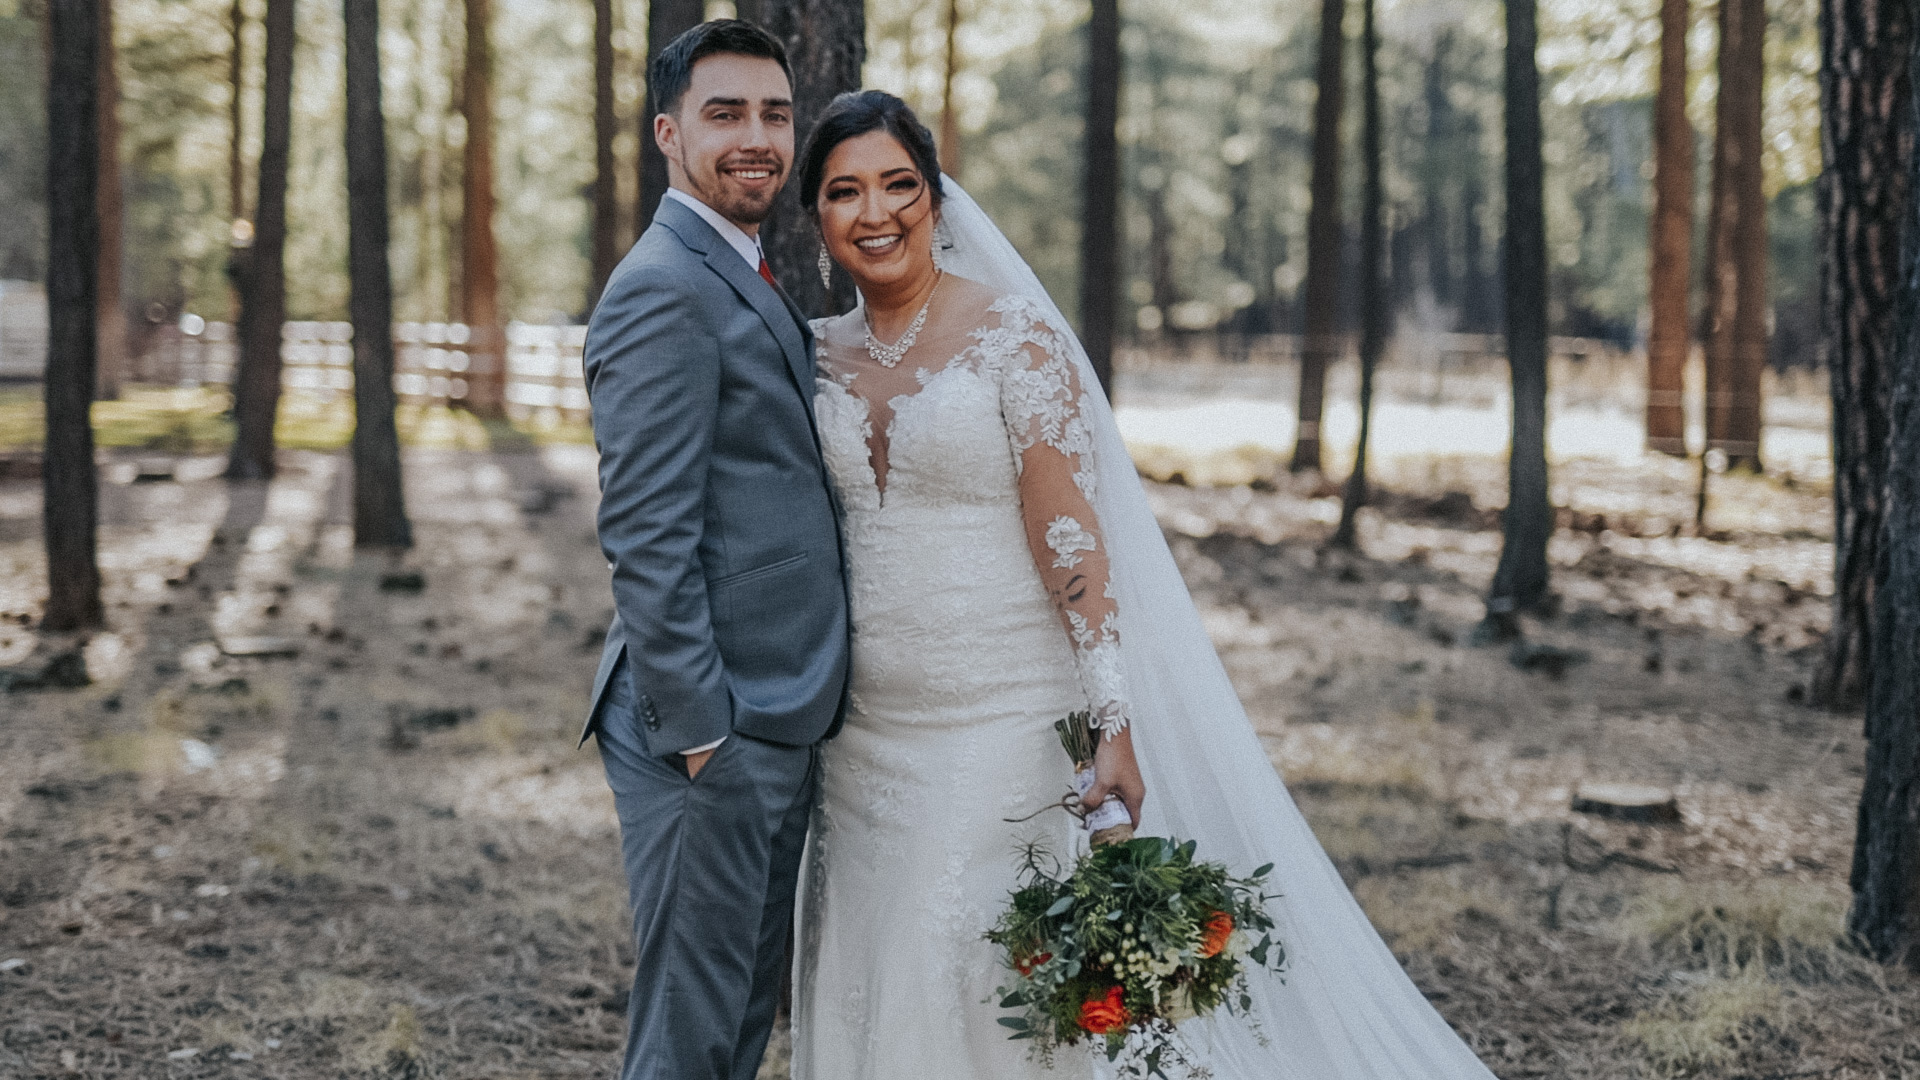 Crystal + Nick | Pinetop-Lakeside, Arizona | The Gathering Place